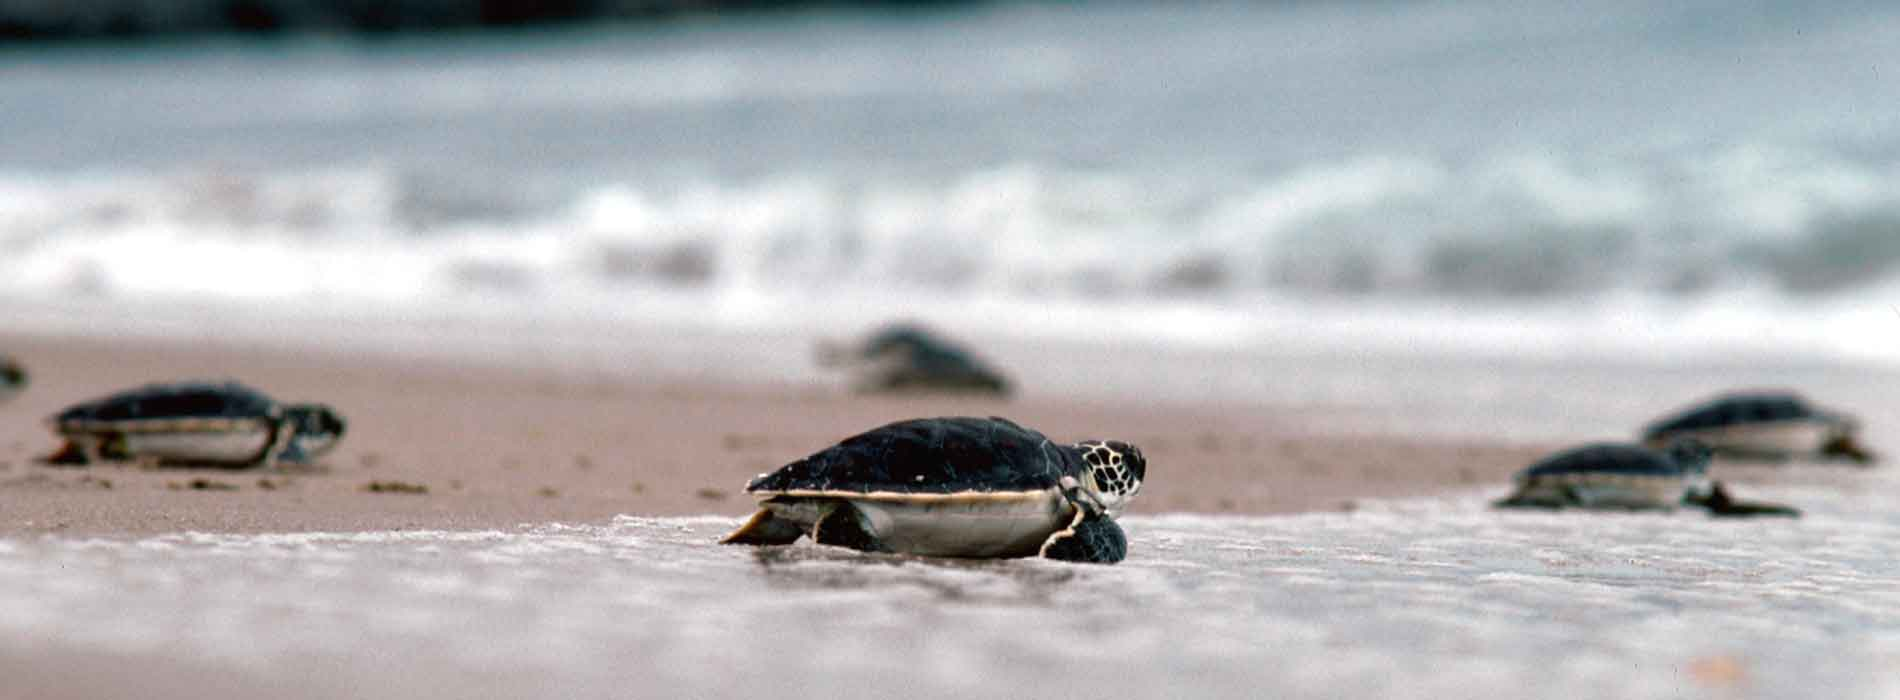 Sea turtle hatchlings scurry to the water